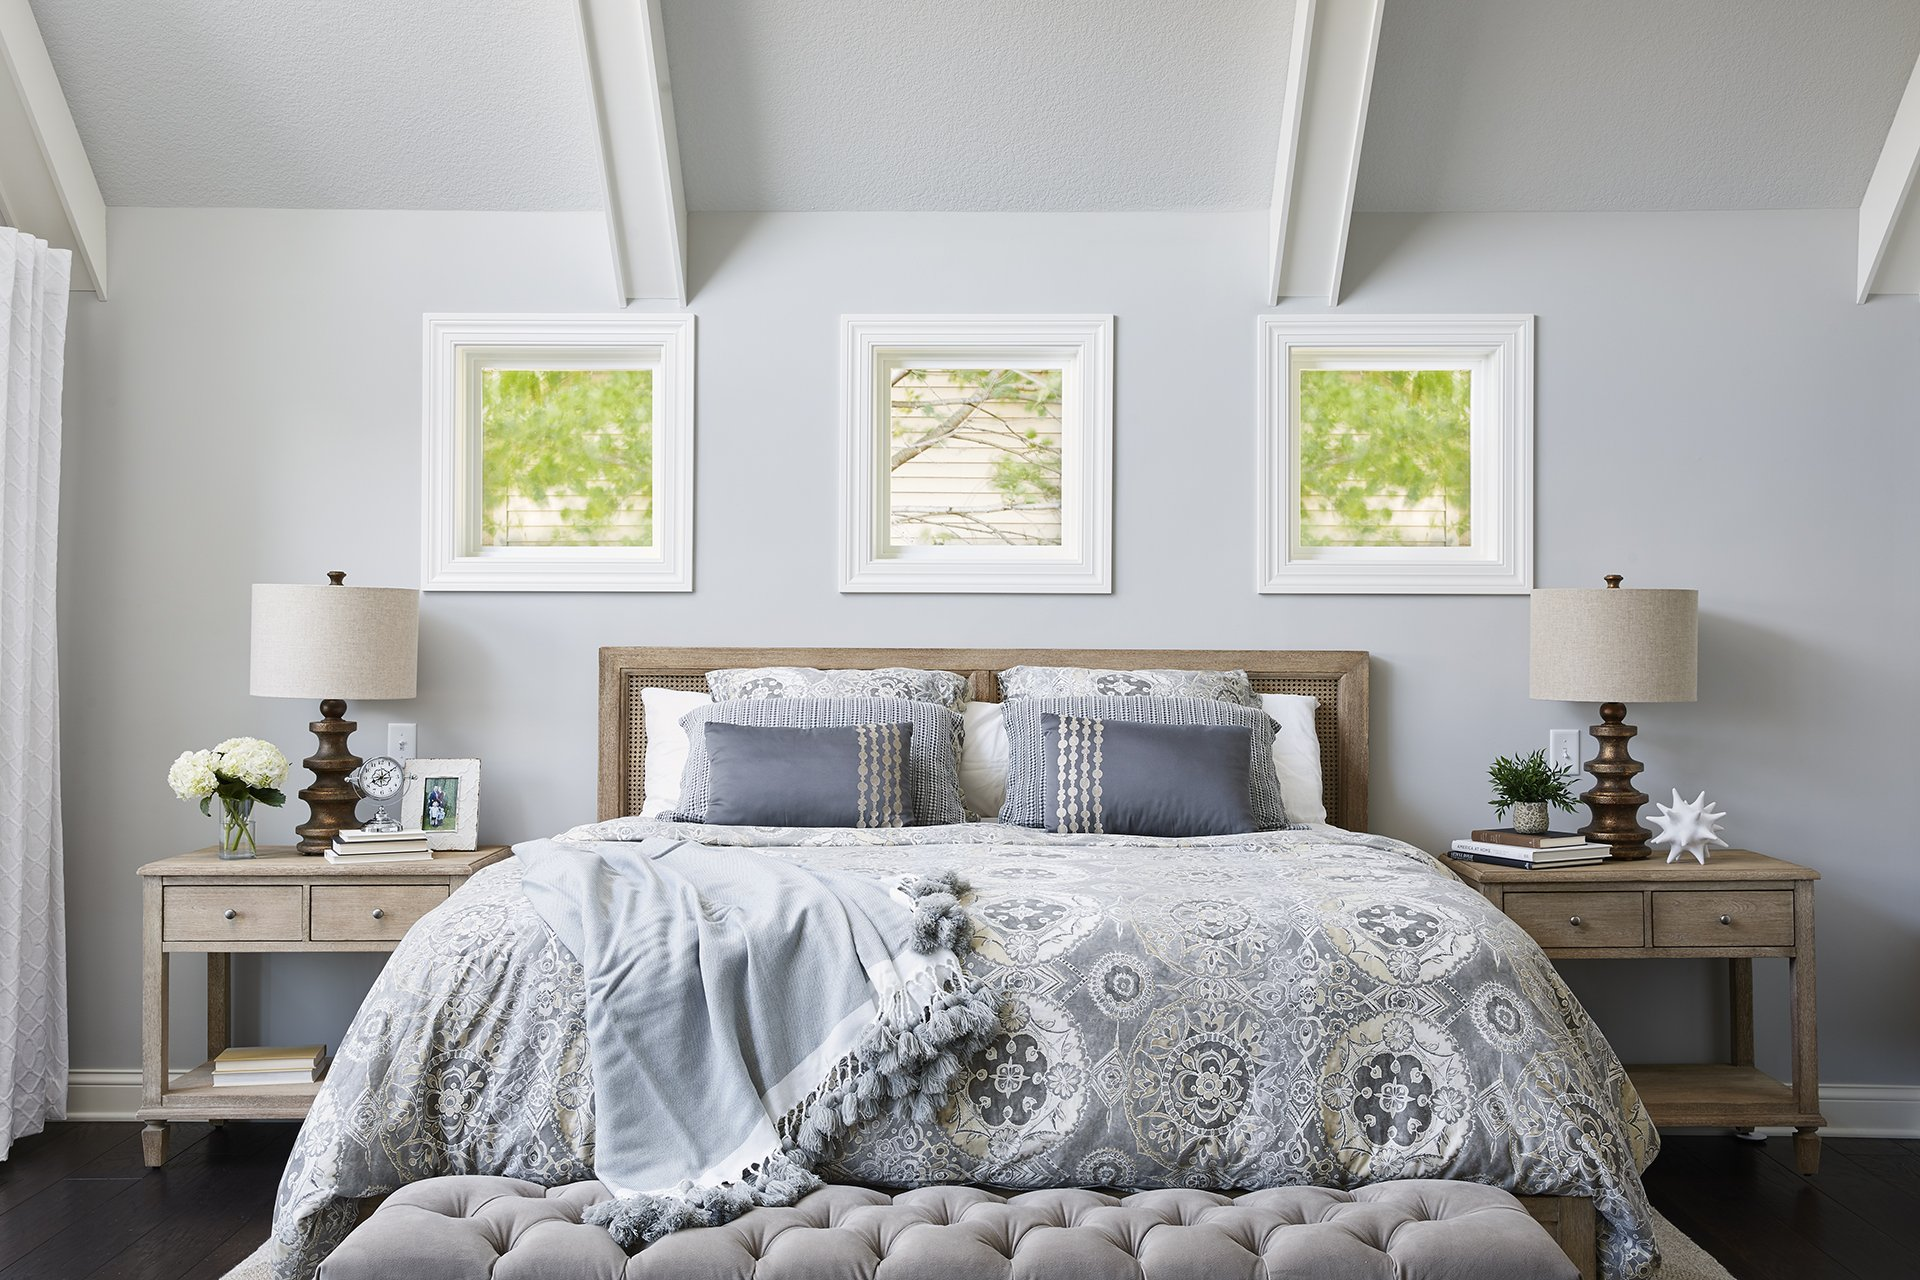 Soft shades of blue co-mingle in this patterned duvet, while a distressed wood headboard and dark finished lamps provide contrast, creating an inviting focal point for the space.